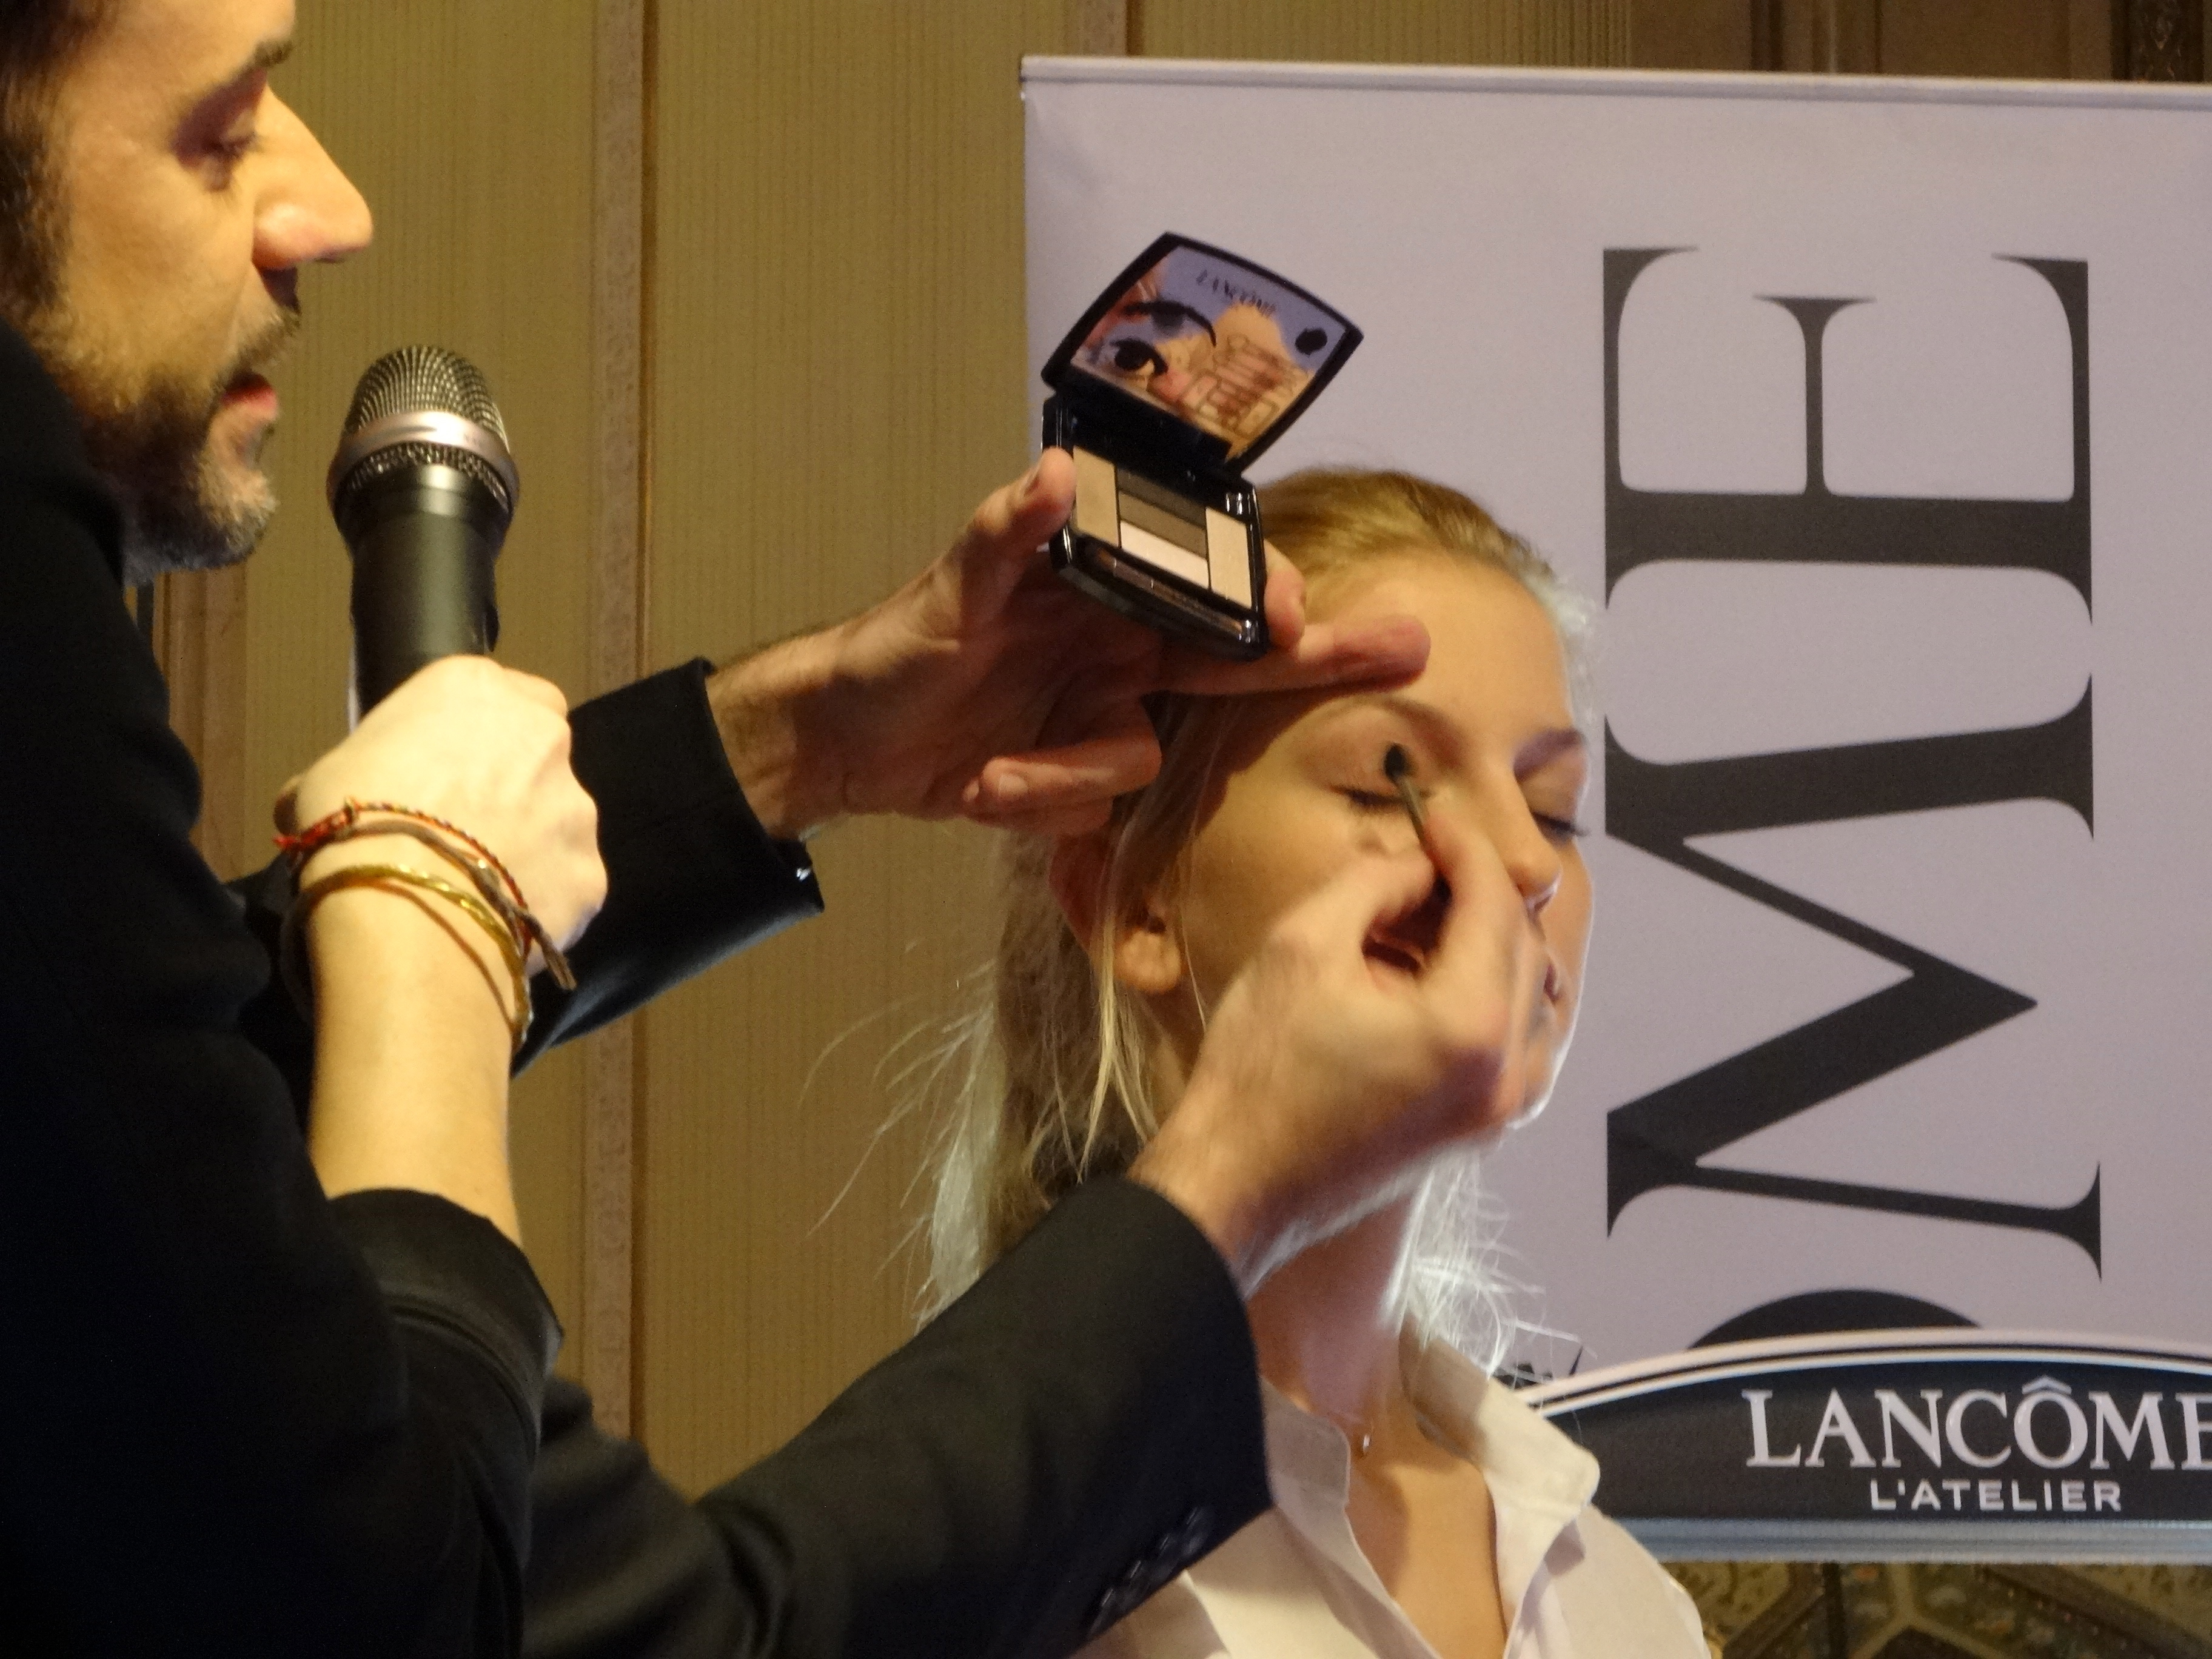 Lancome National Makeu-up Artist demonstrating eyeshadow